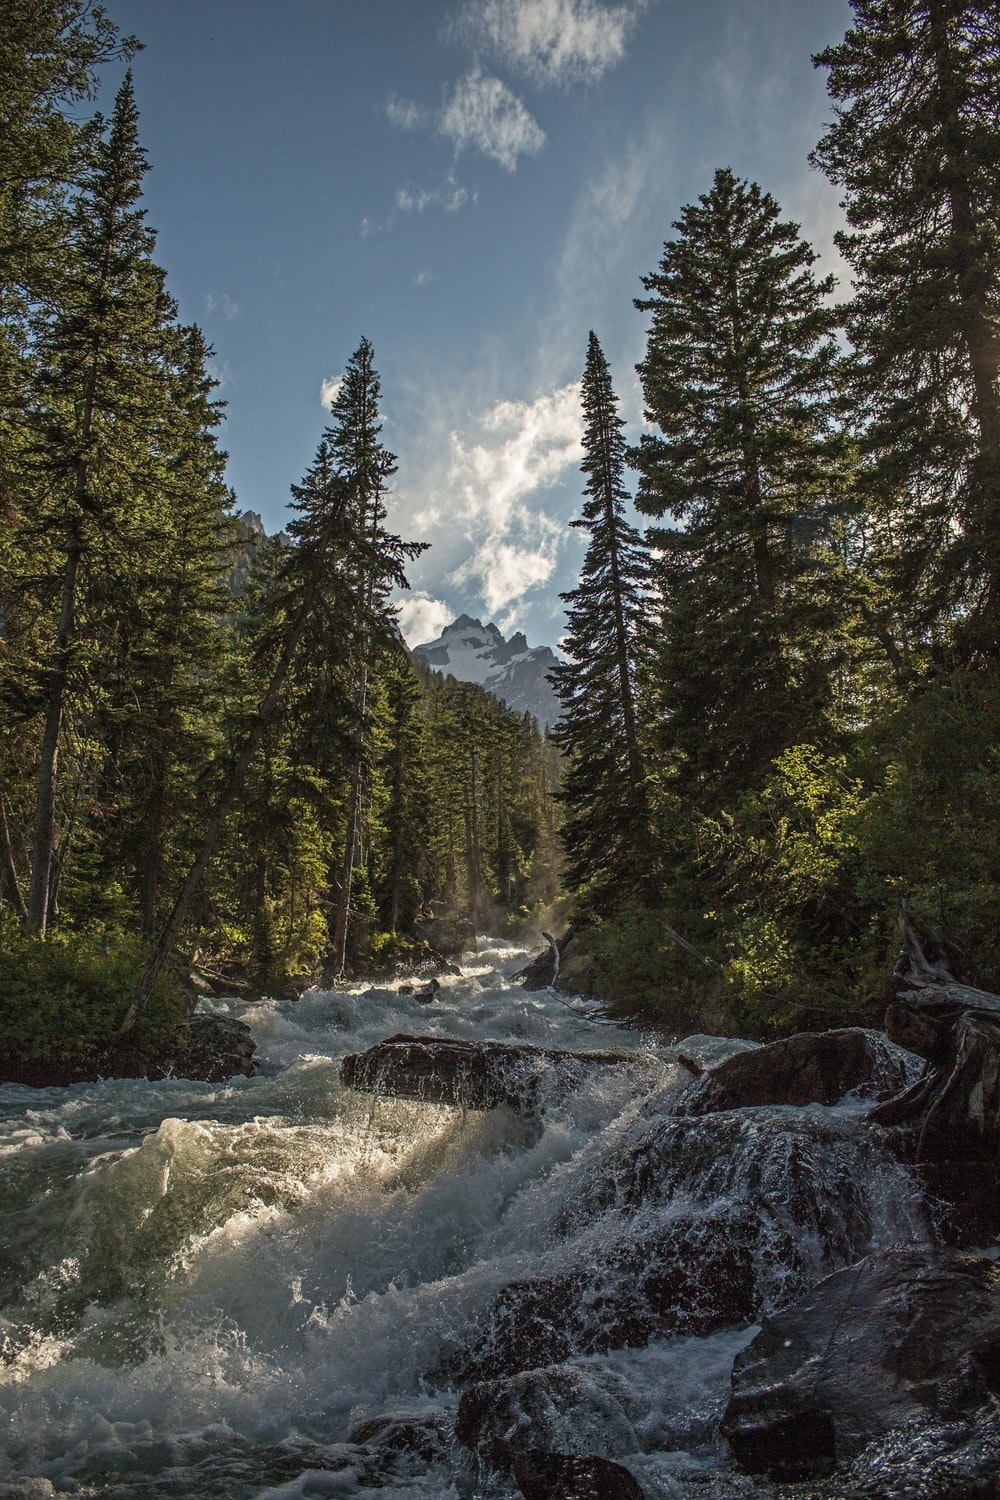 landscape photography of river with trees